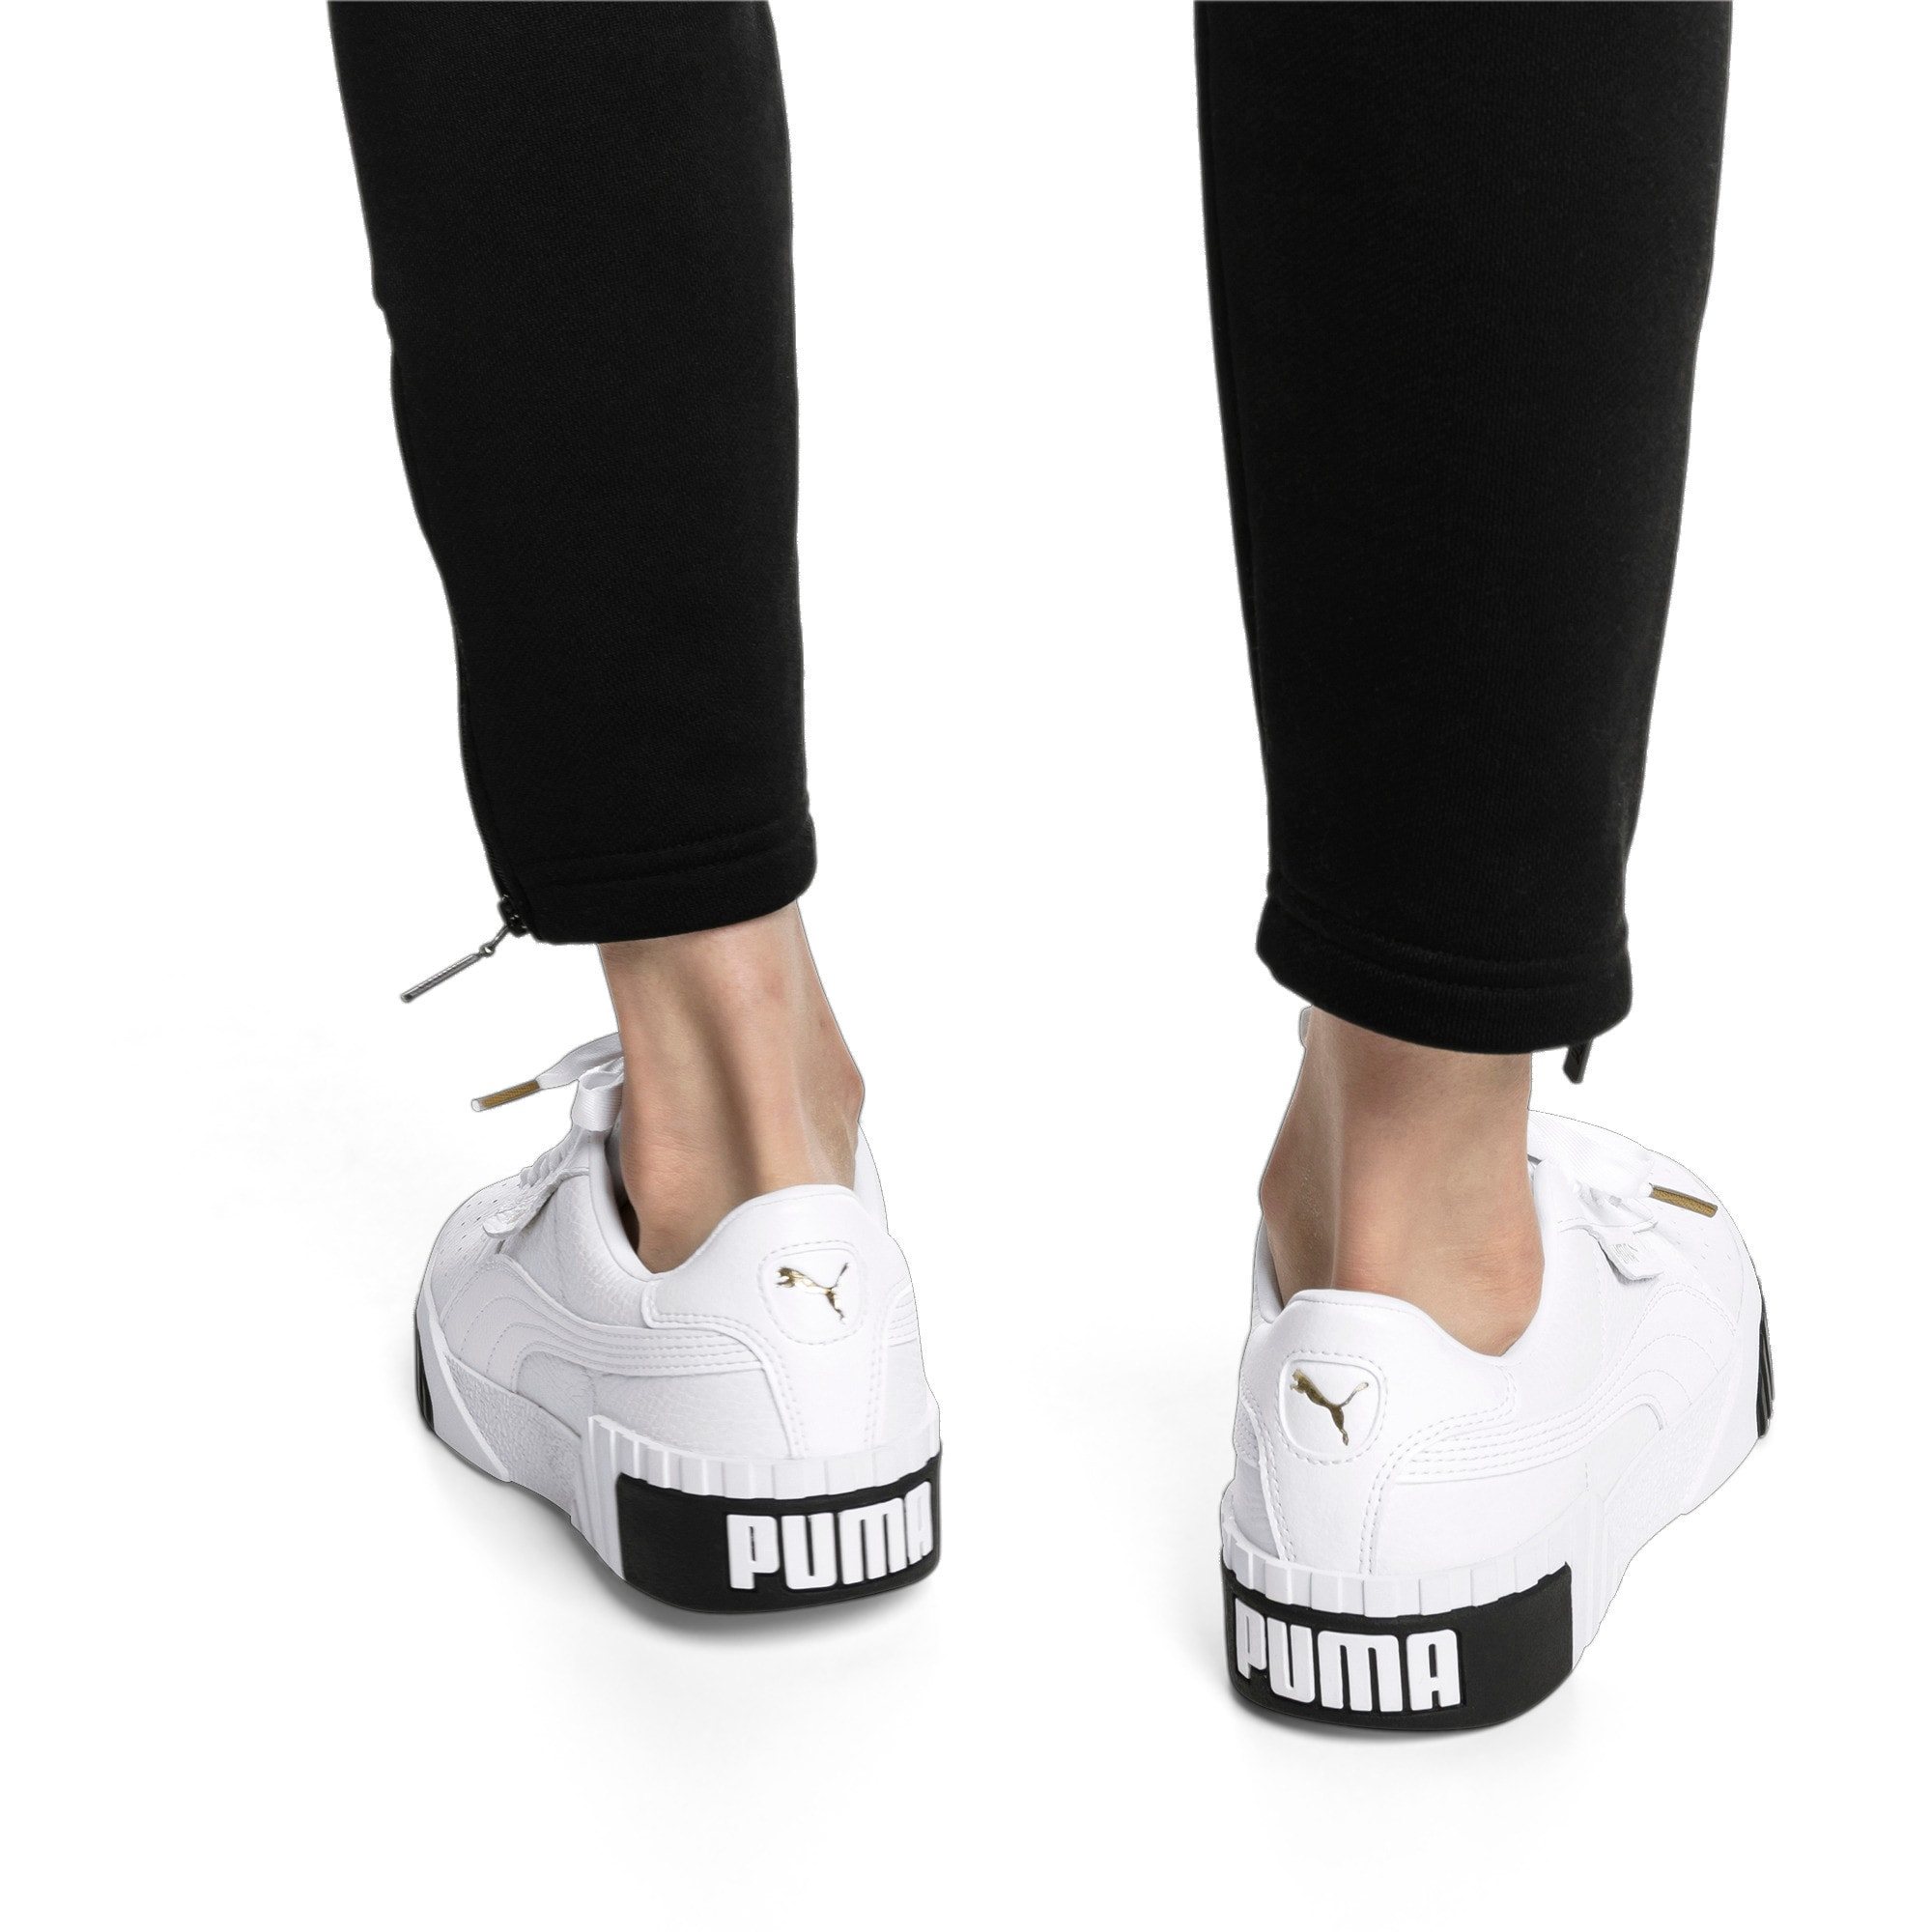 Thumbnail 2 of Cali Women's Trainers, Puma White-Puma Black, medium